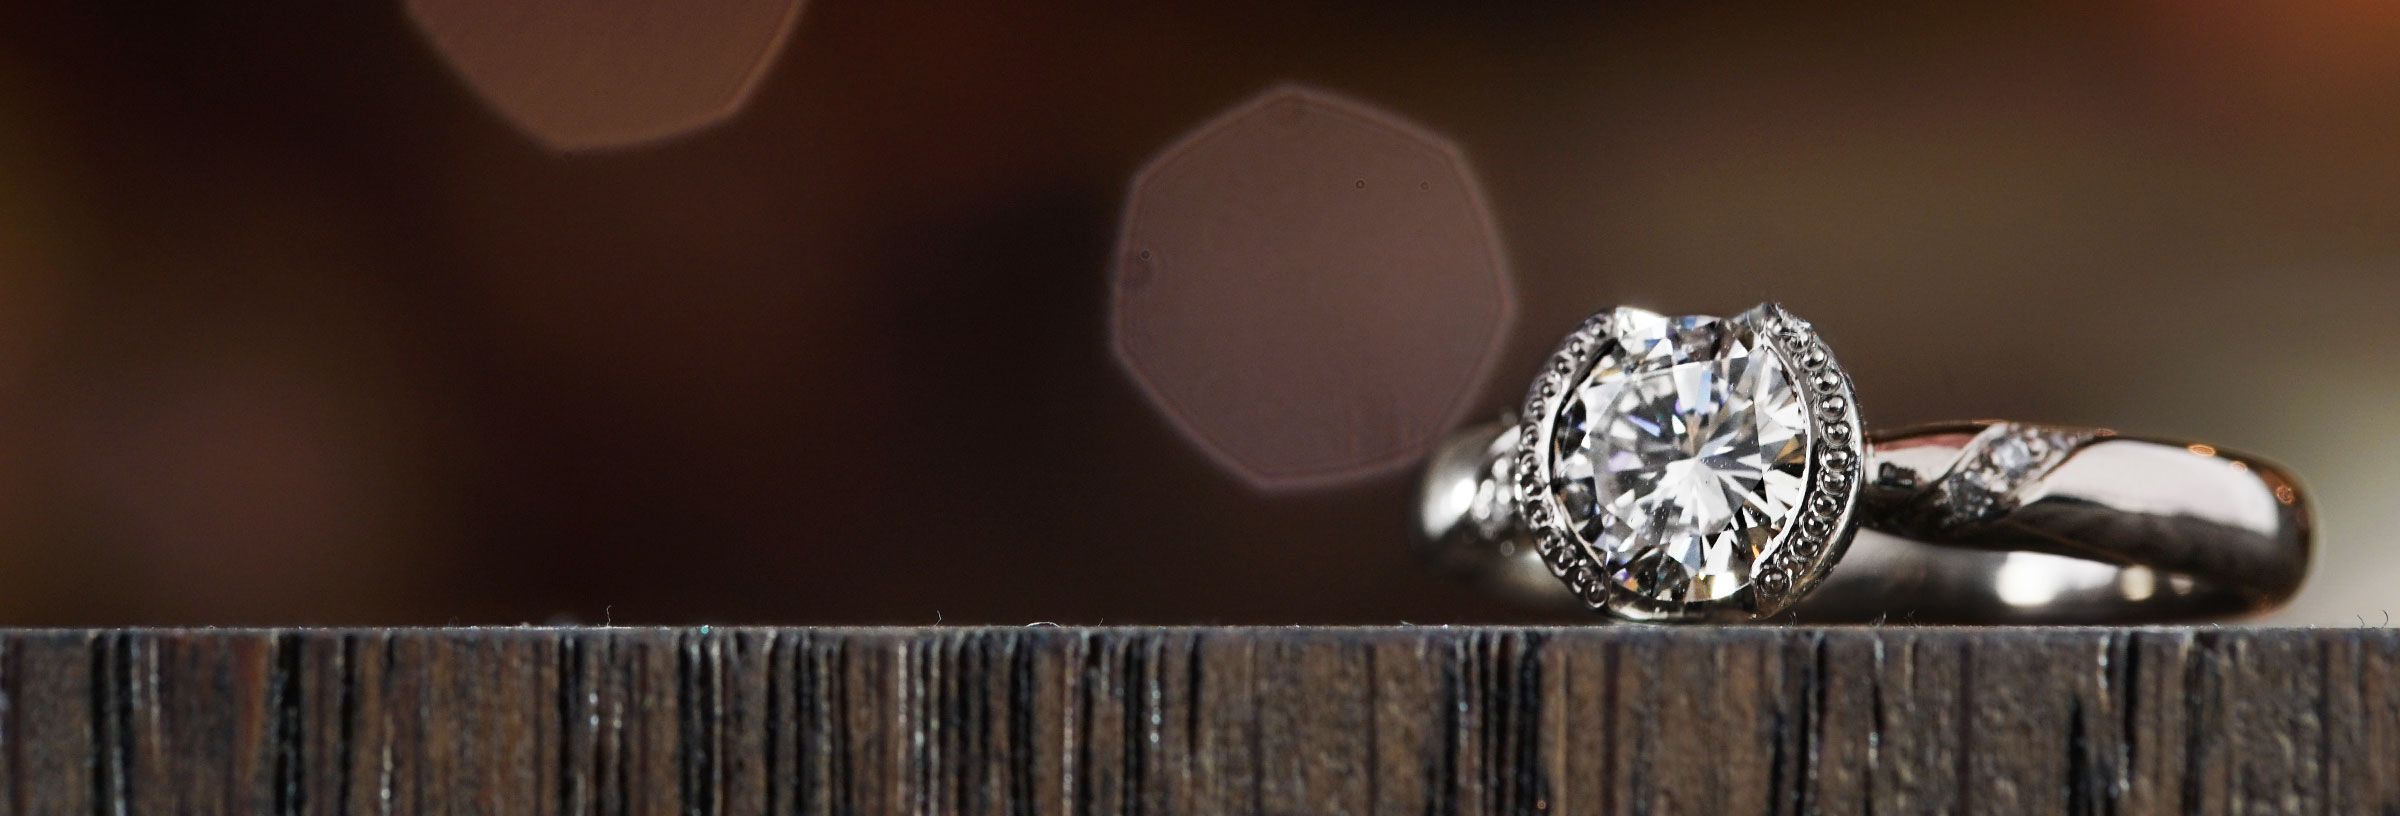 18-carat-white-gold-and-recycled-diamond-engagement-ring